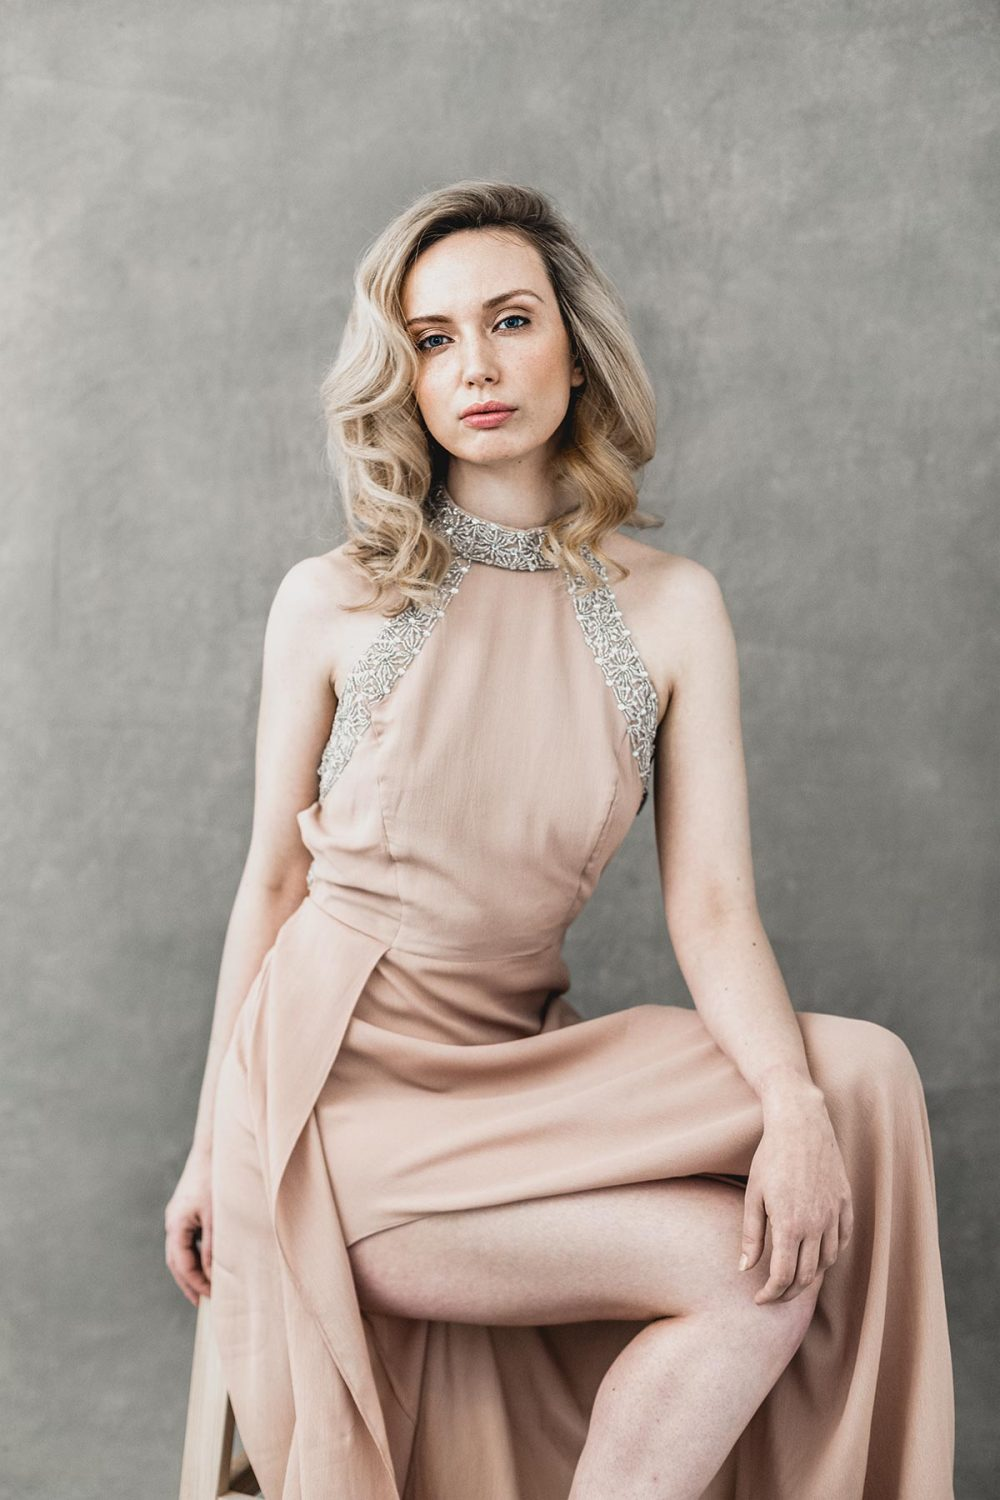 glamorous woman in a blush dress sitting on a stool